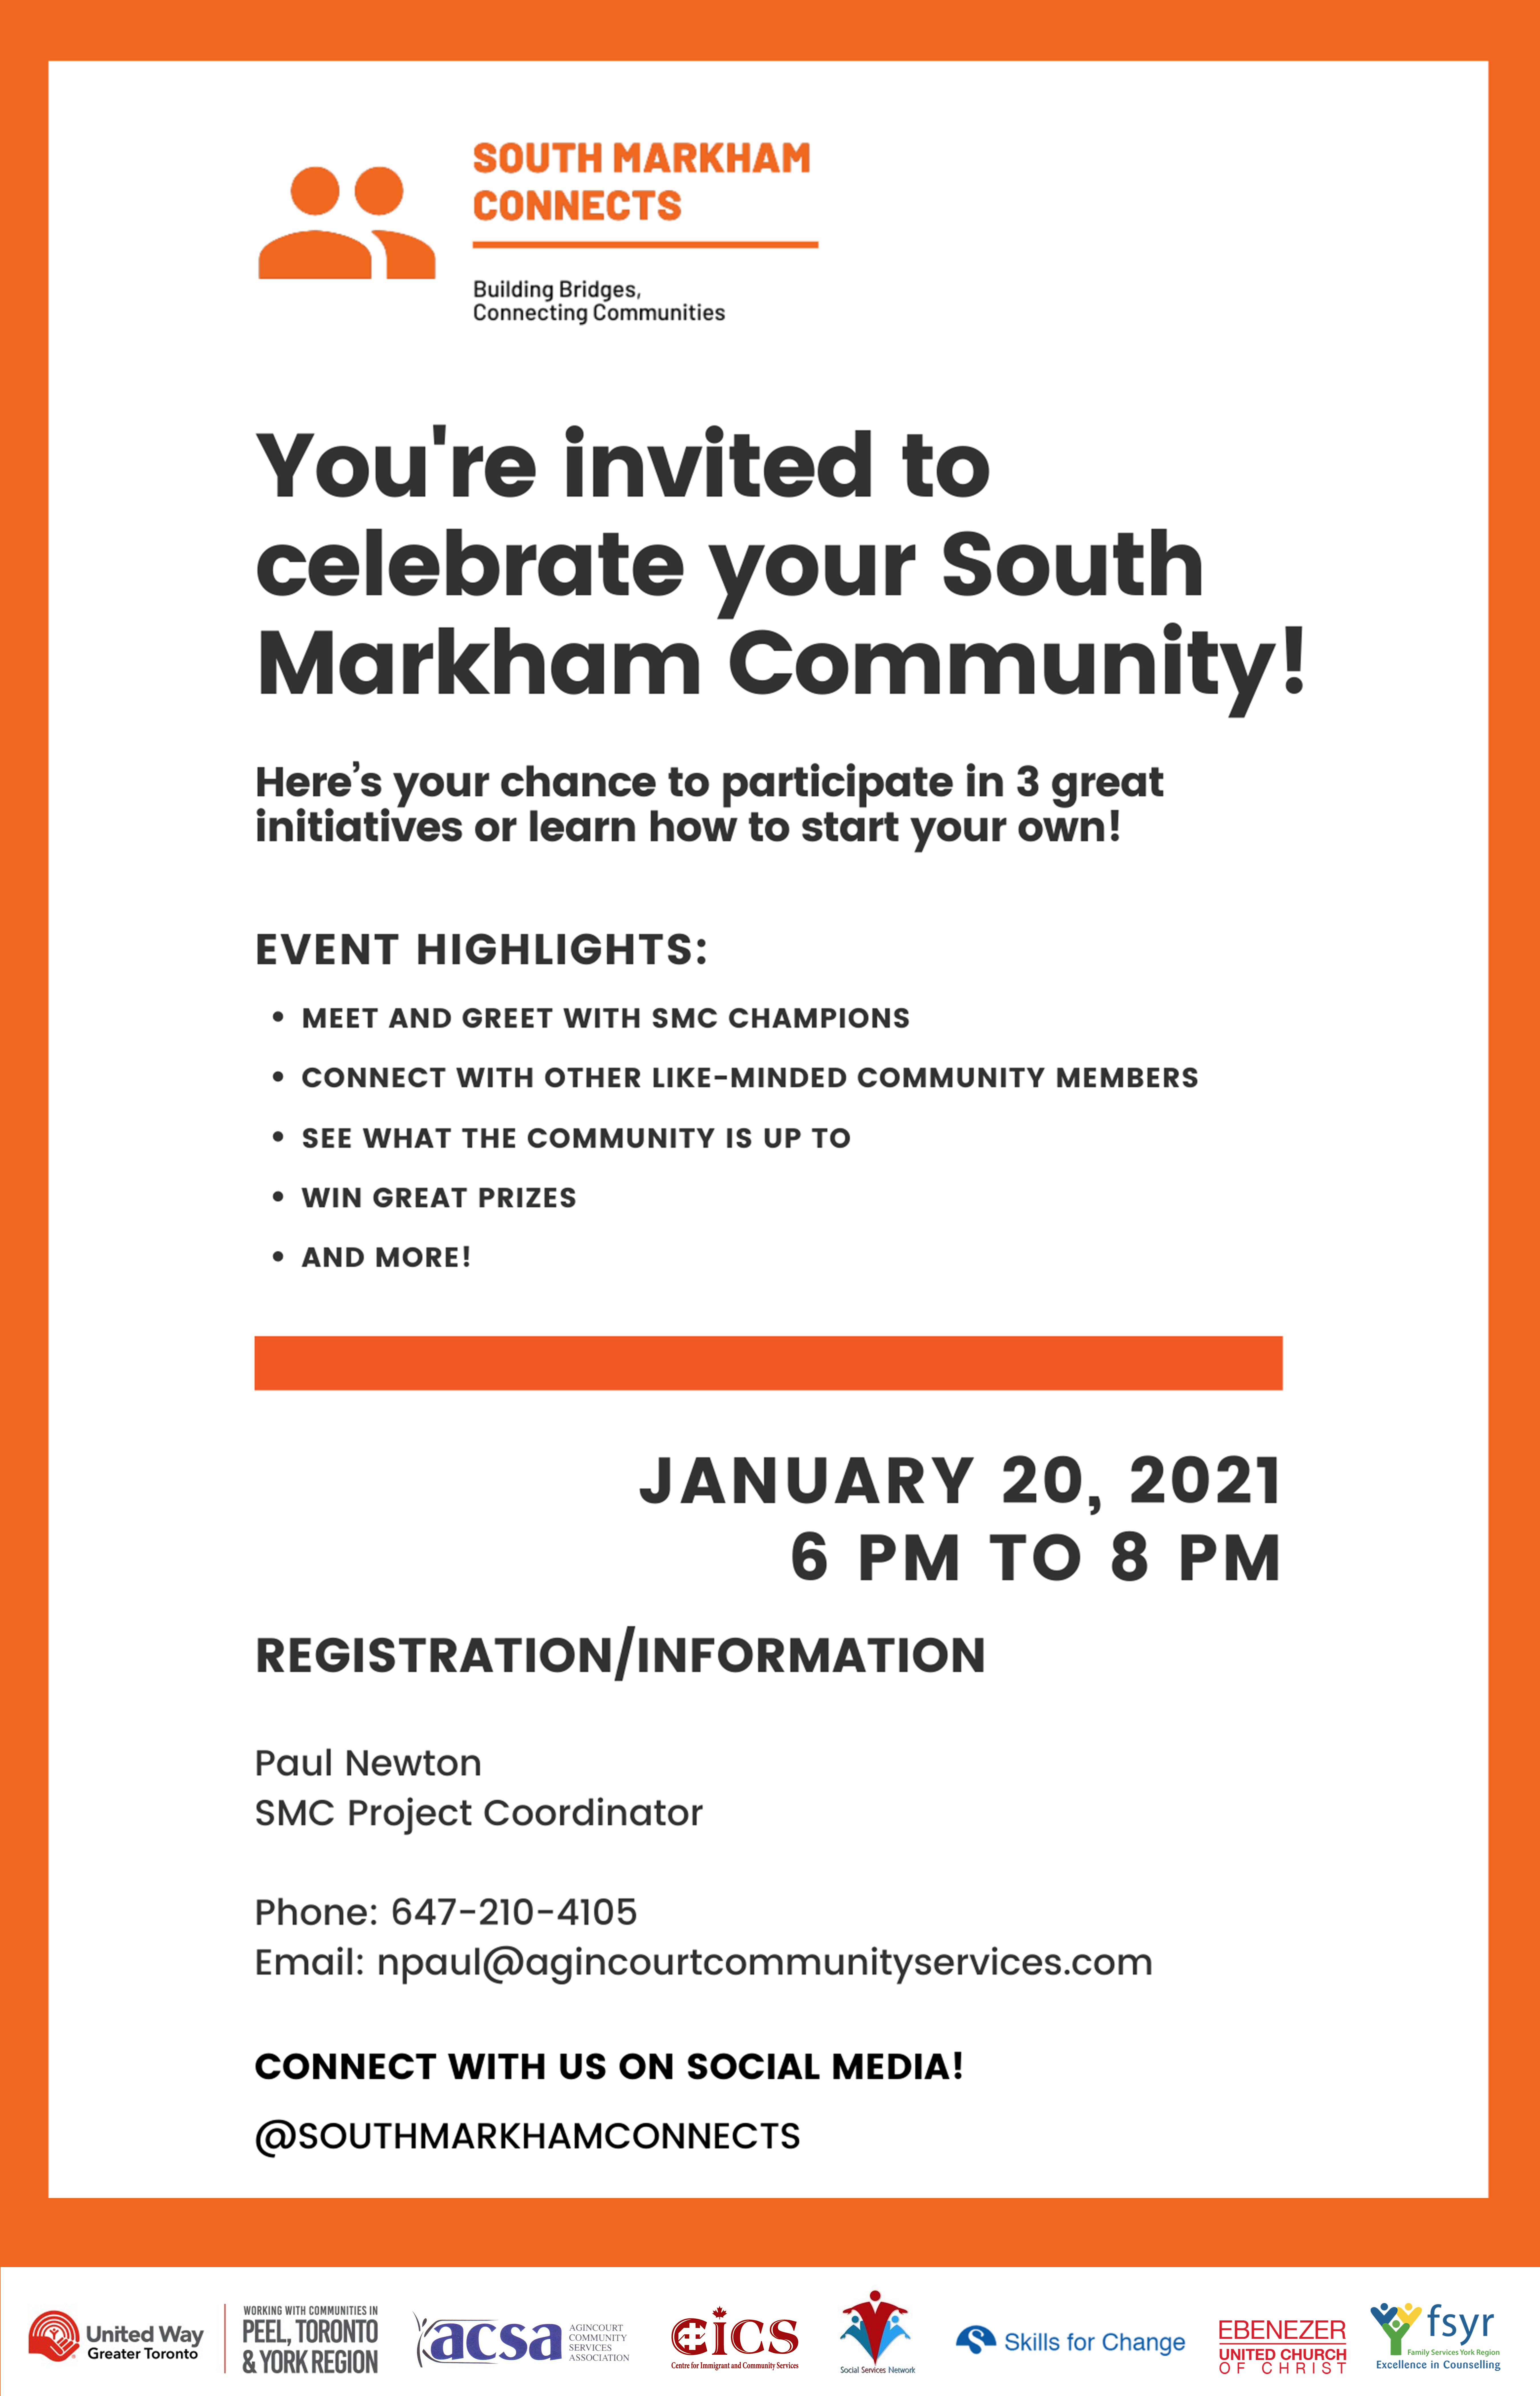 South Markham Connects